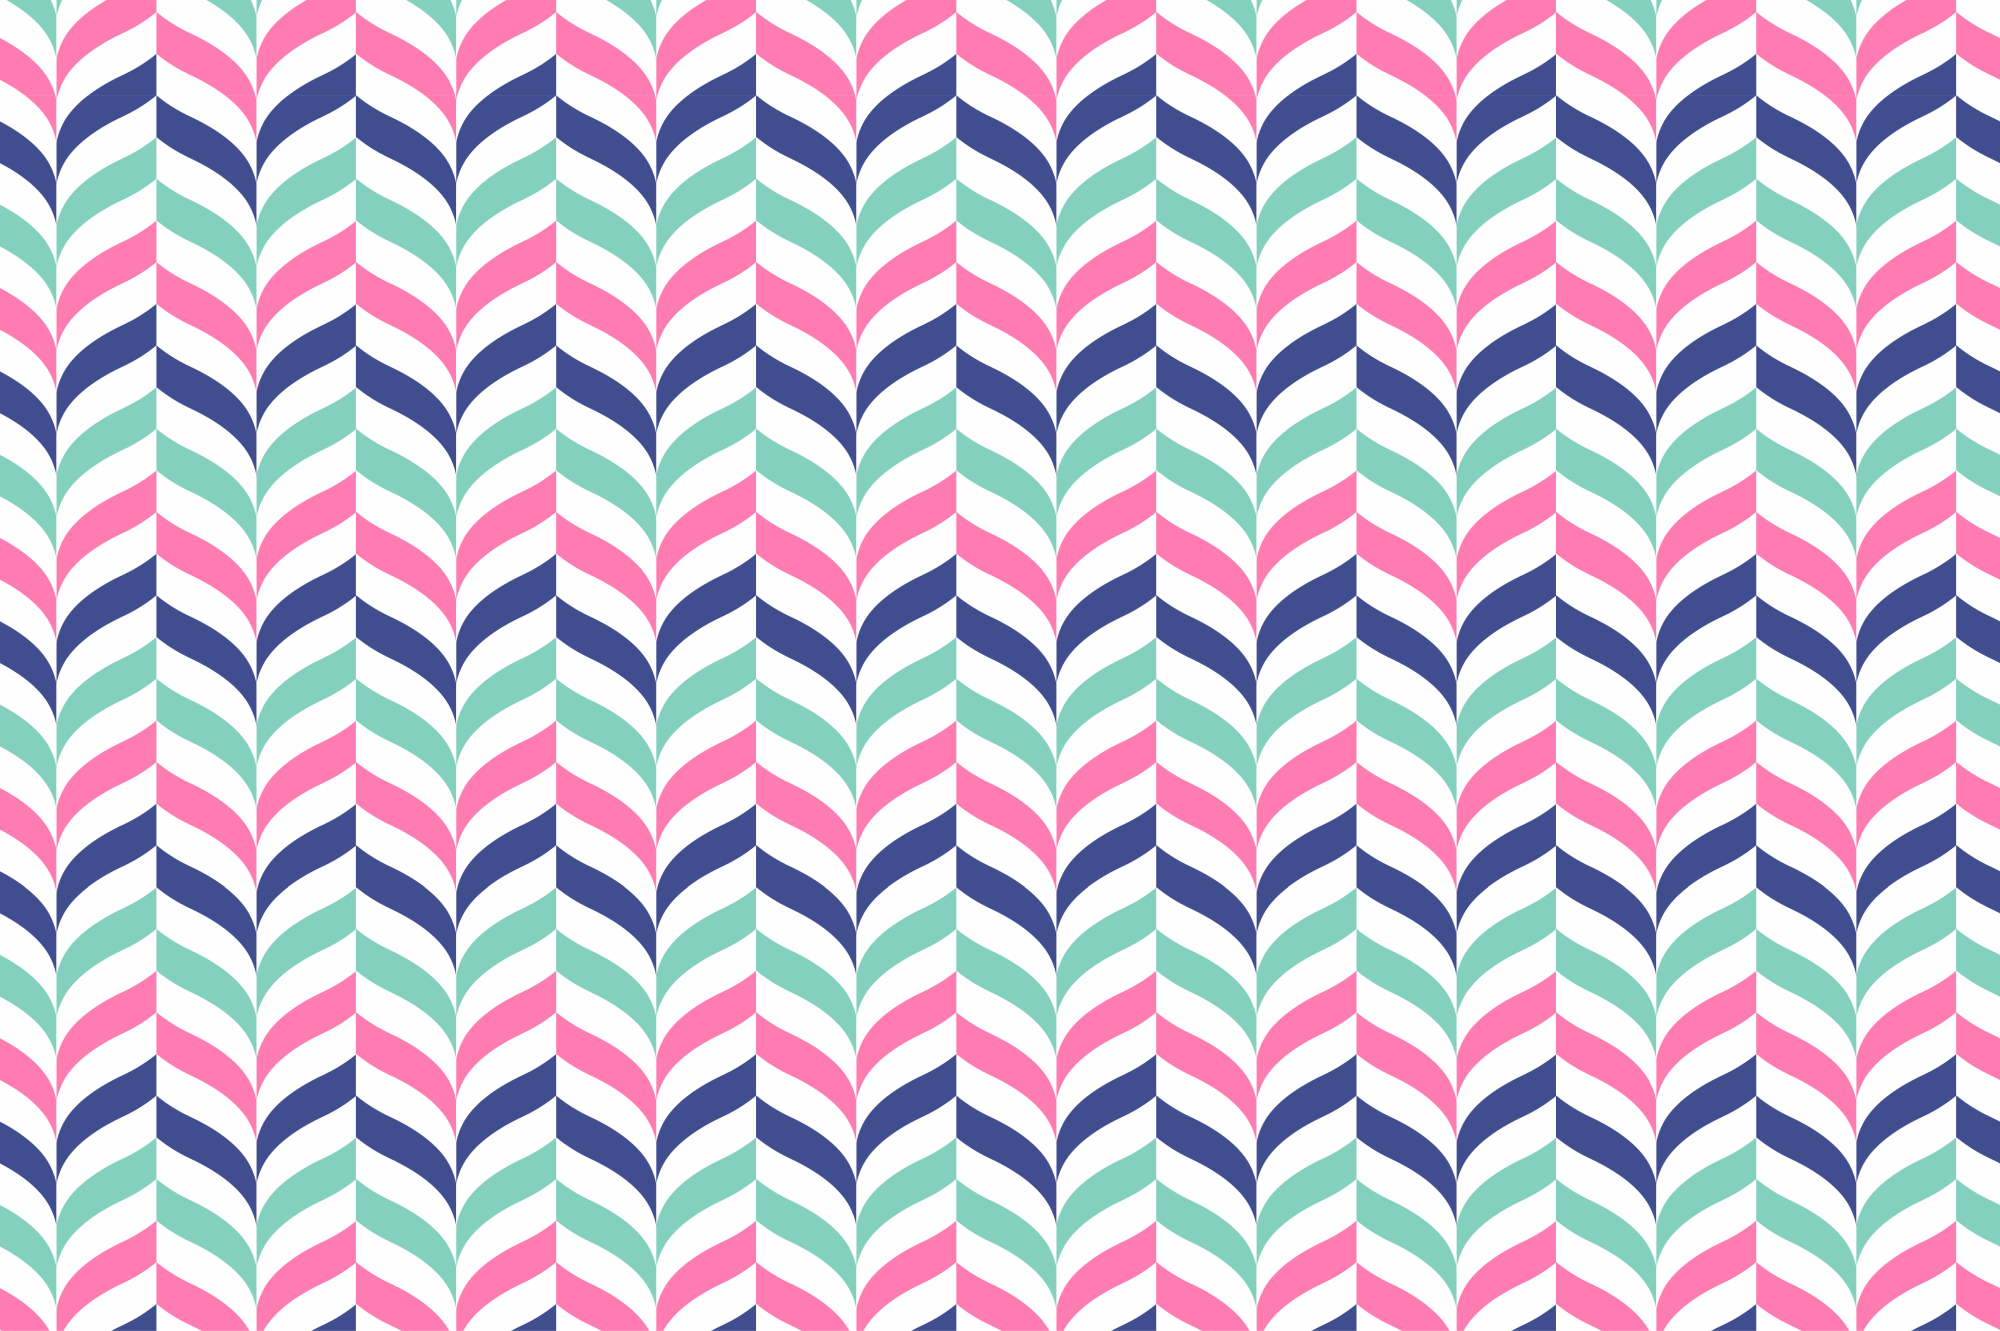 Color geometric patterns - seamless. example image 6